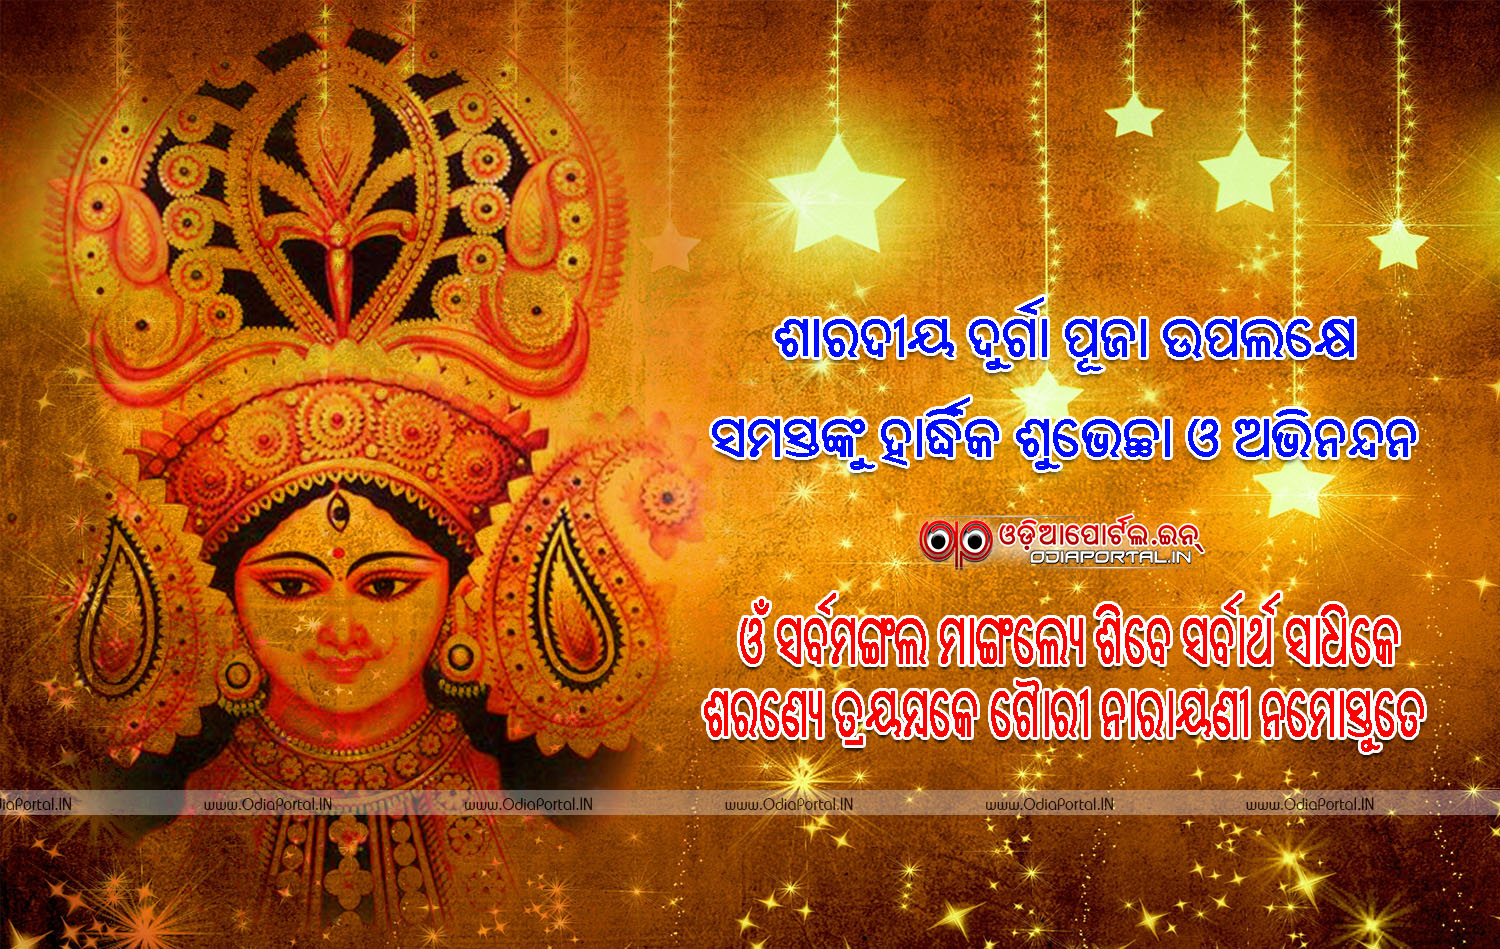 Download durga puja dushera 2017 odia greetings and hd pc smart download dushera 2016 odia greetings and hd pc smart phone whatsapp wallpapers kristyandbryce Images